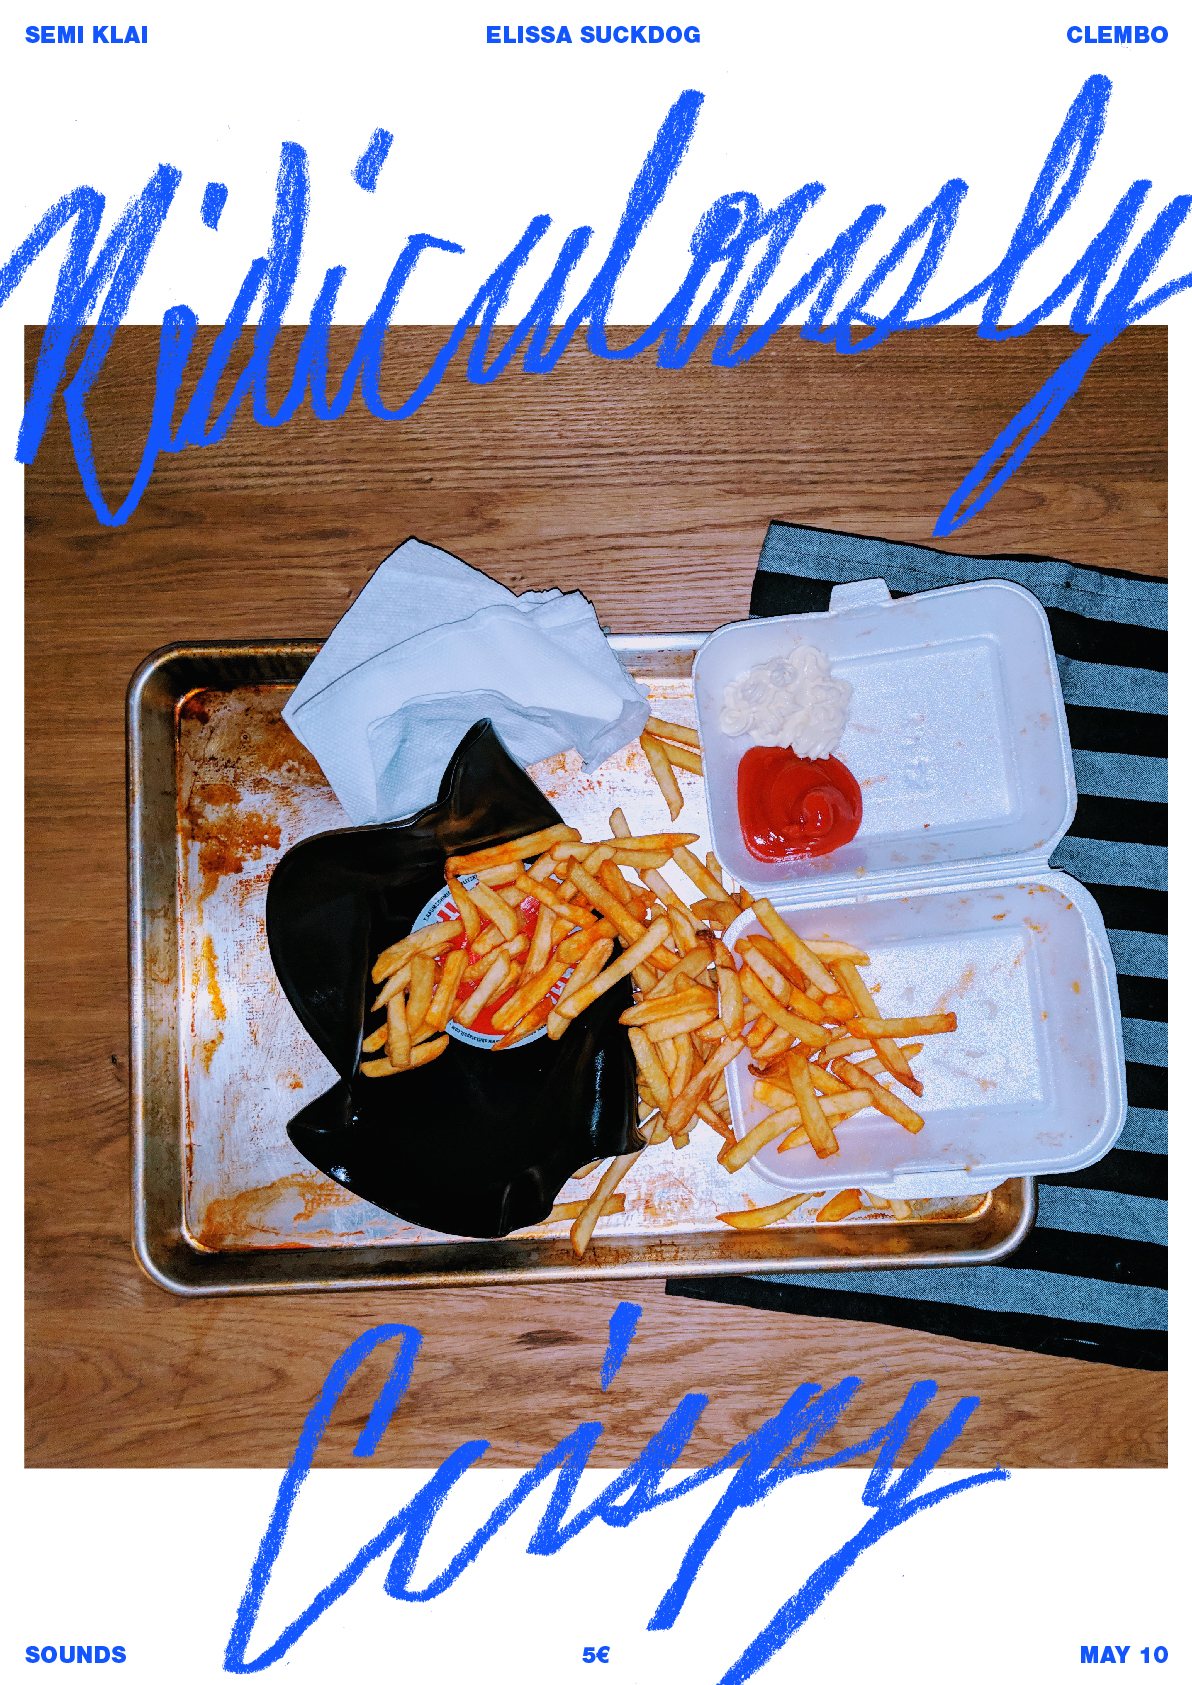 Ridiculously Crispy: A party series by Semi Klai featuring a real fried record.